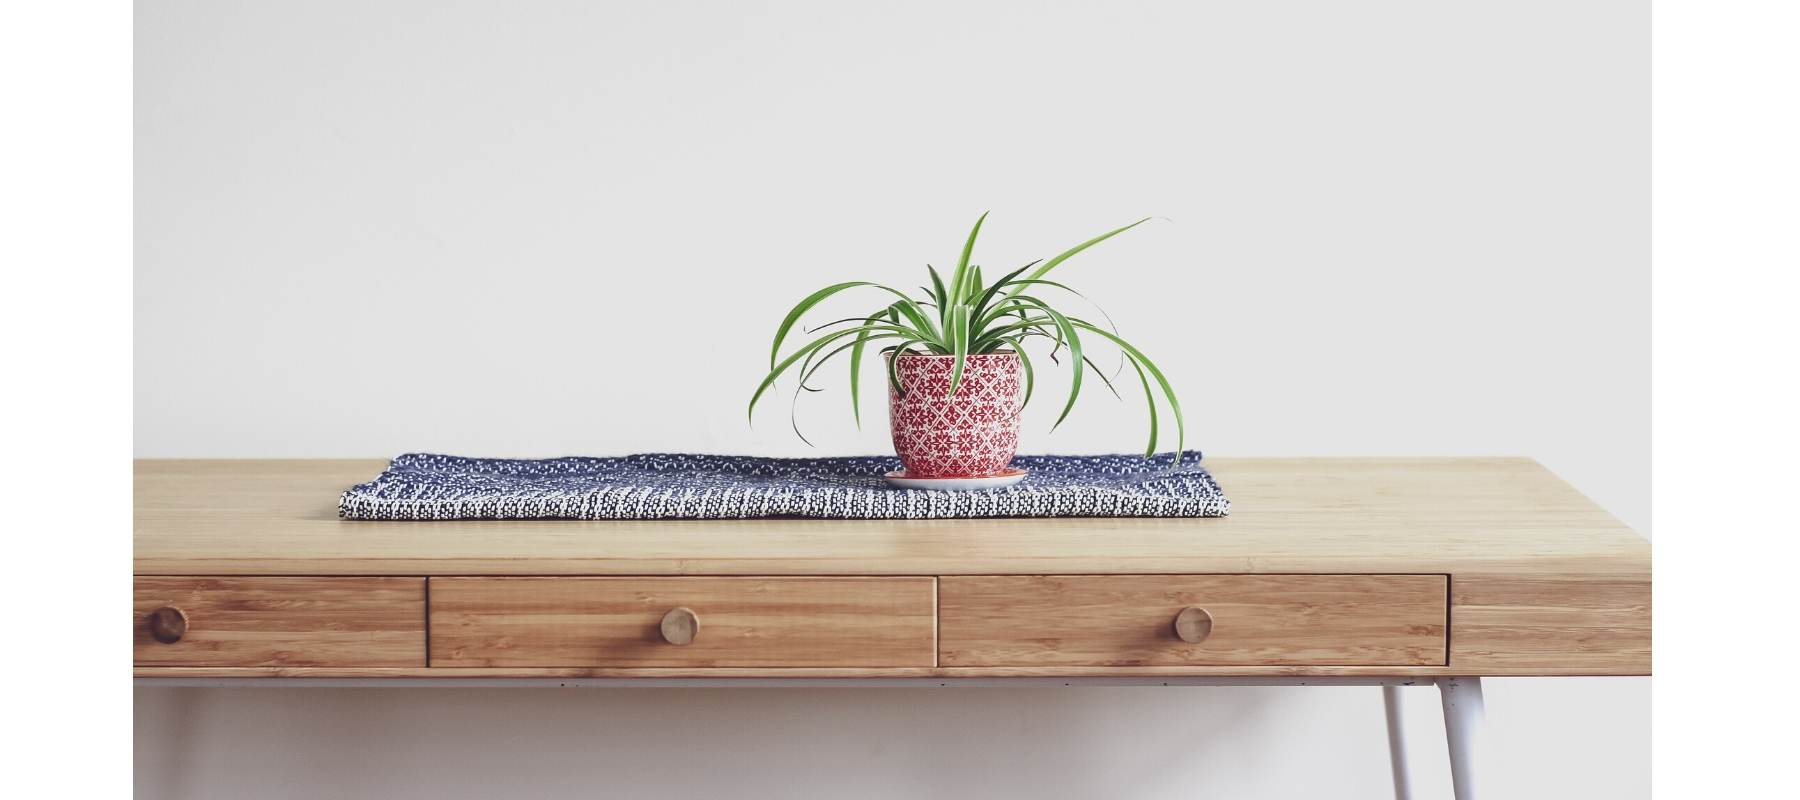 Rustic wood table in hallway with small green pot plant